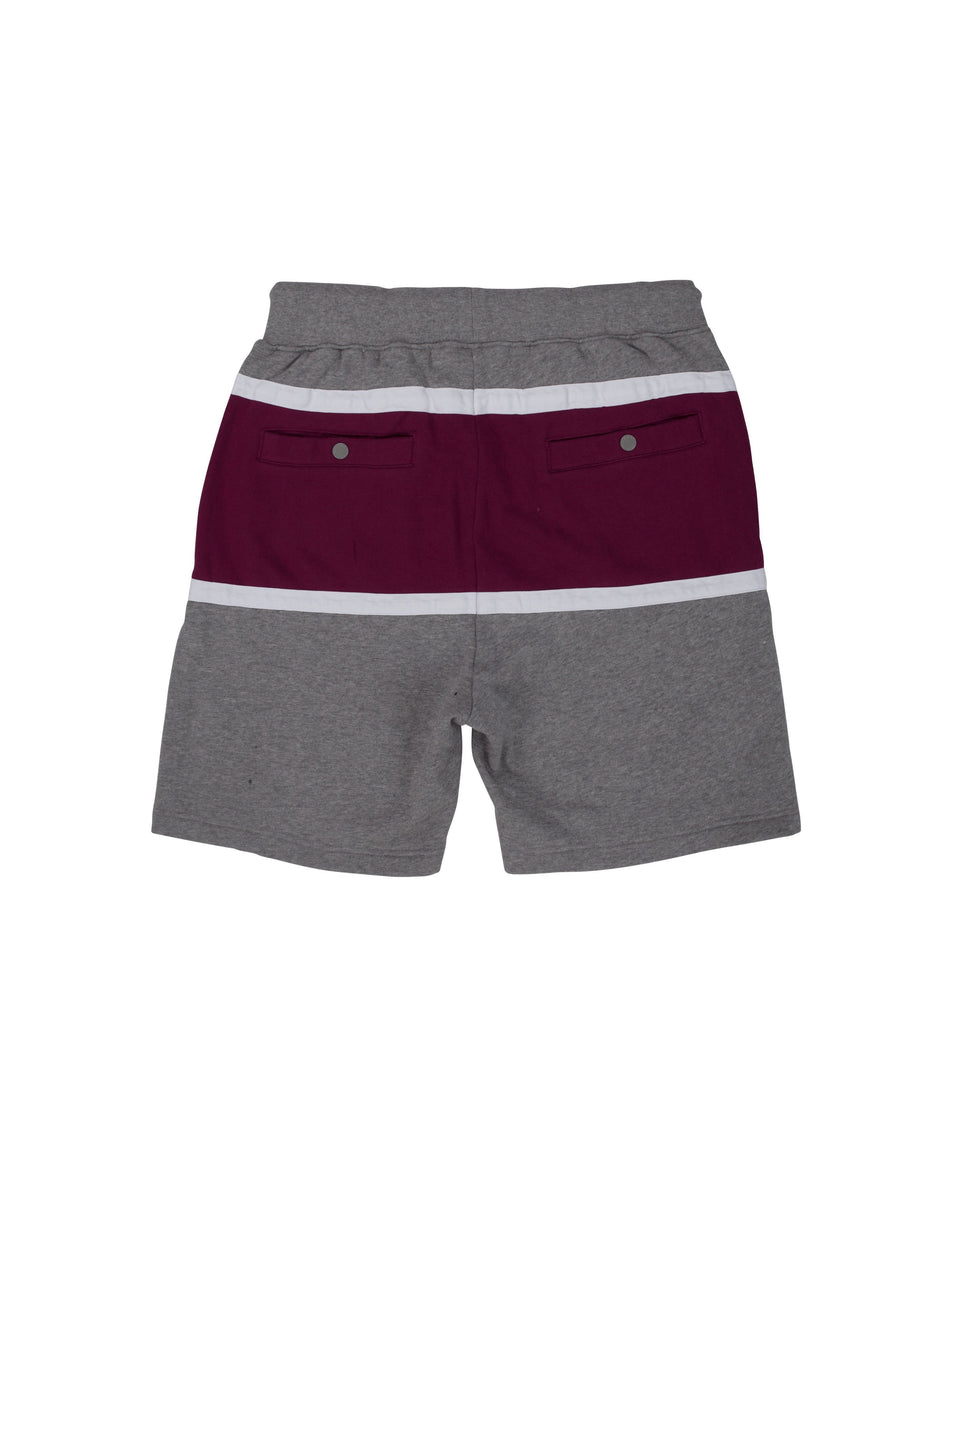 Ole Sweatshorts-BOTTOMS-The Hundreds UK